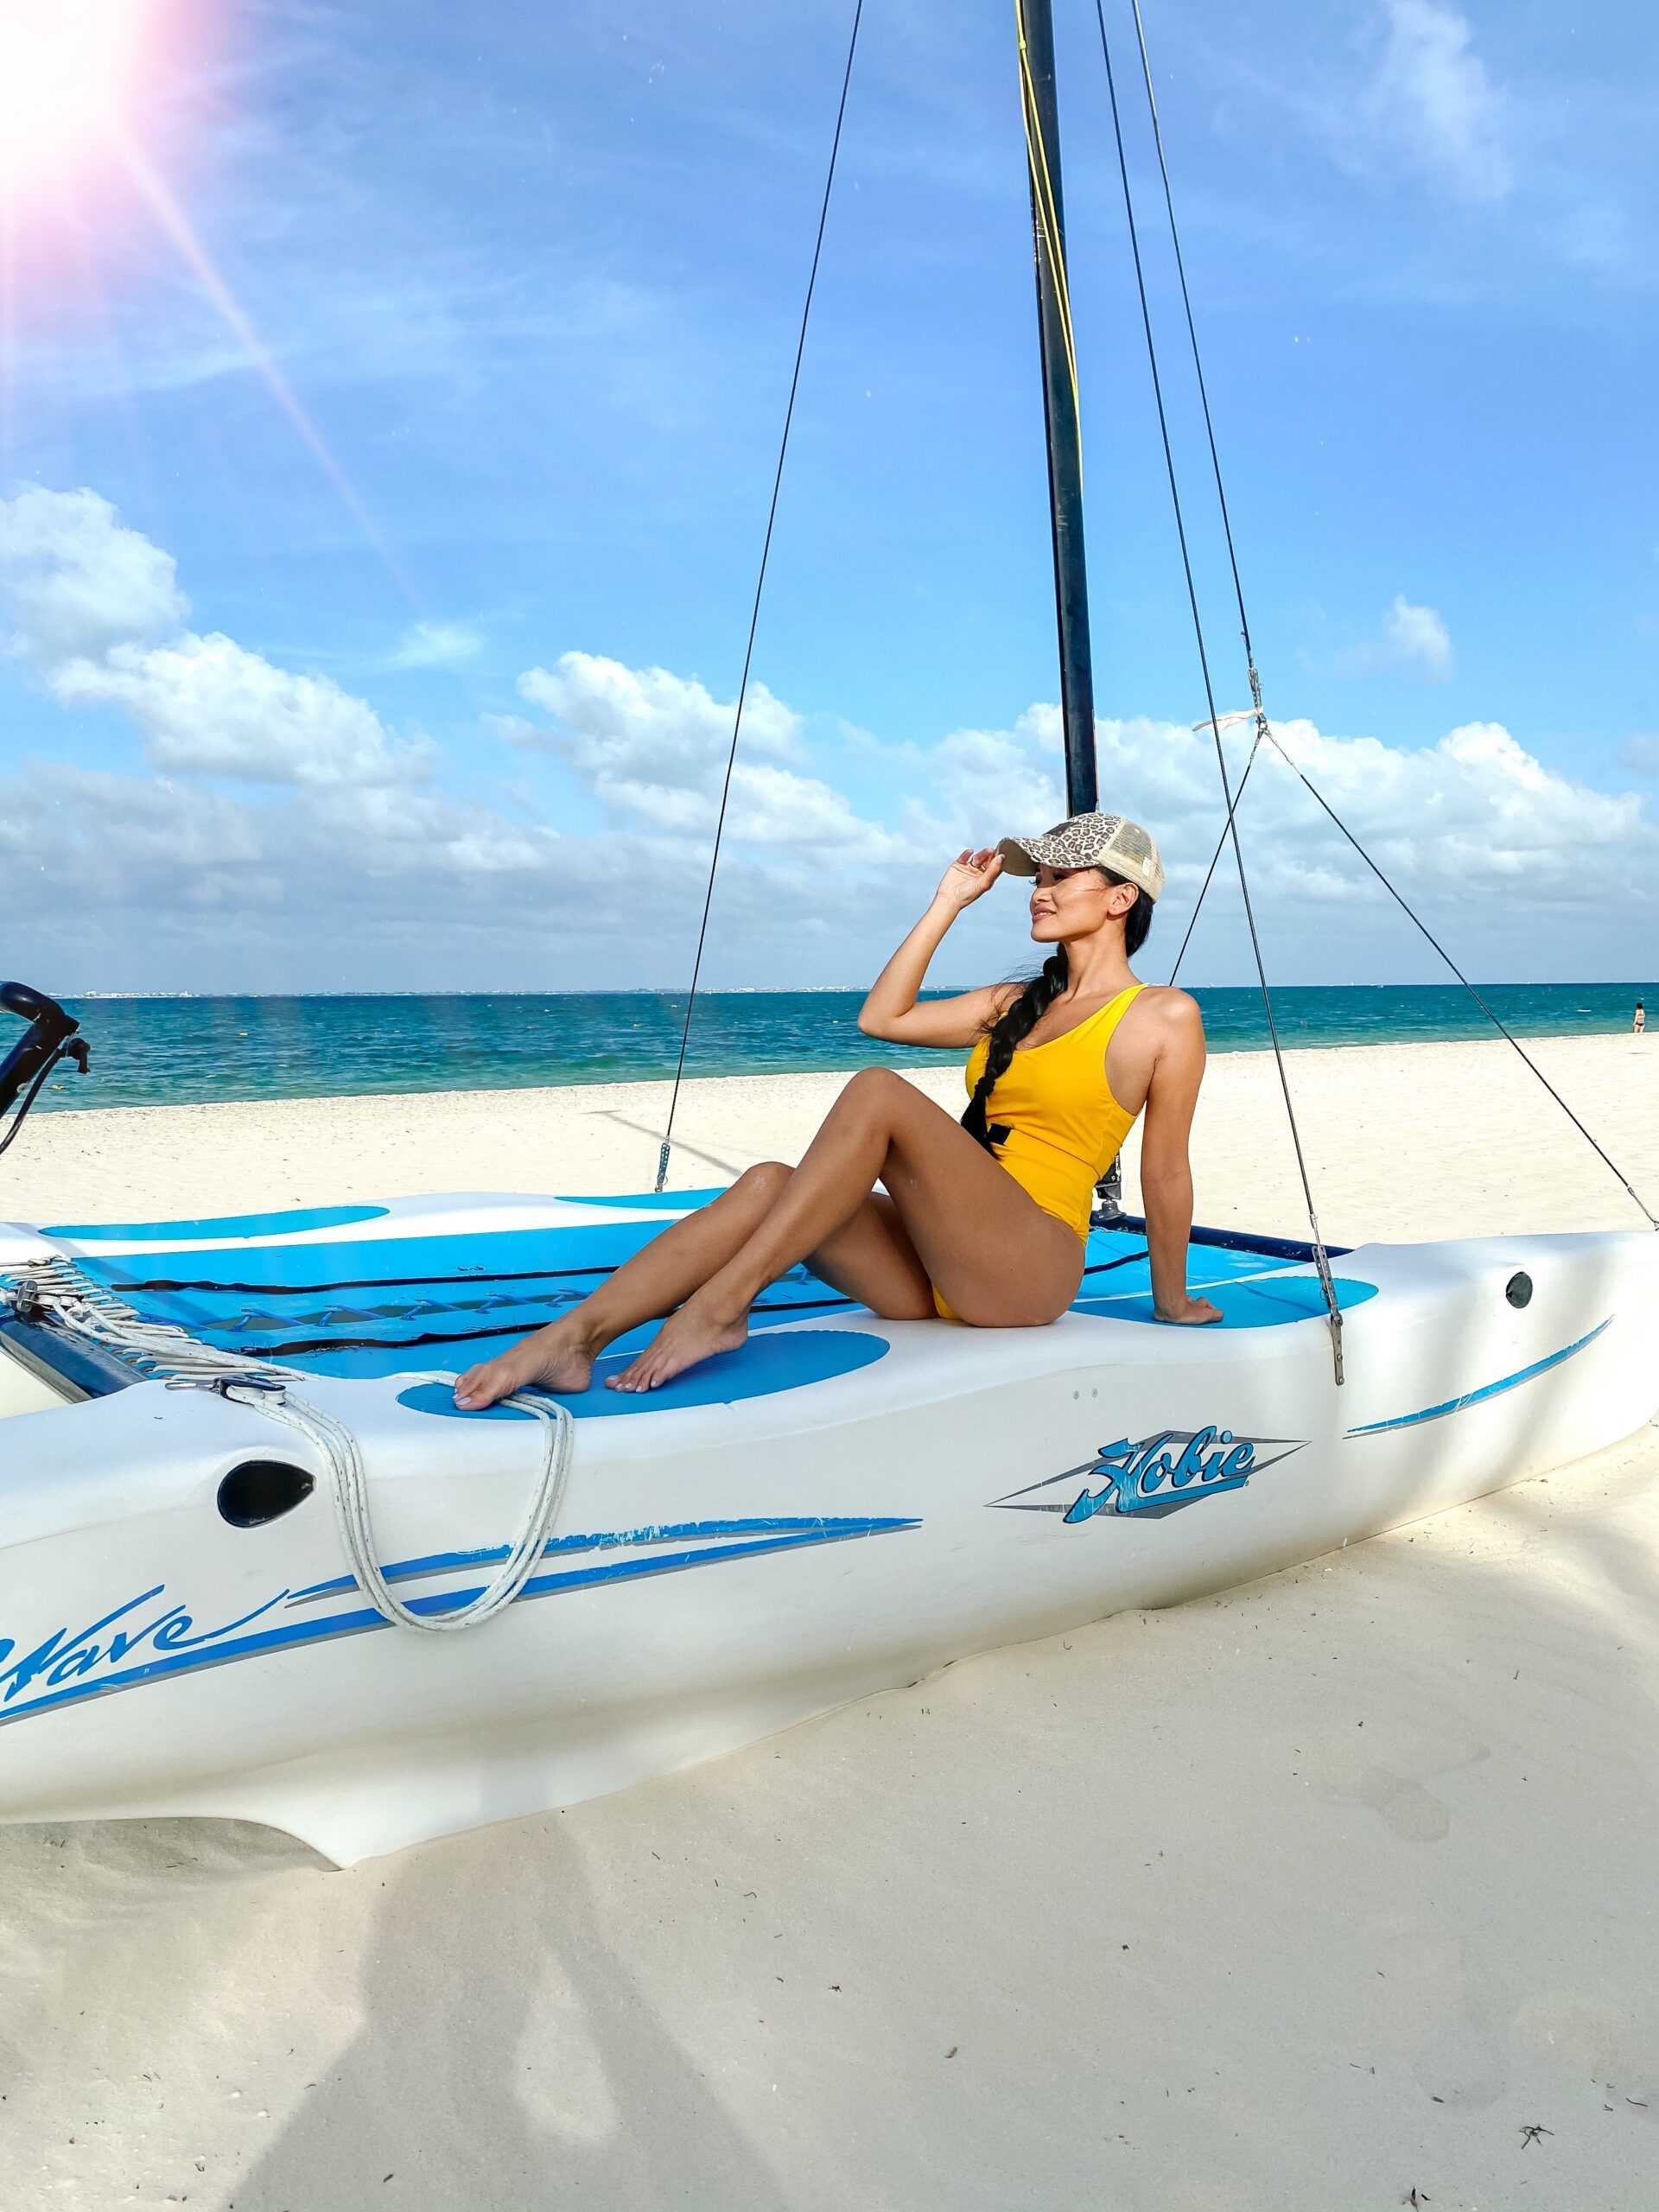 YELLOW SWIMSUIT, AMAZON FIND, SAILING, VACATION WATER SPORTS